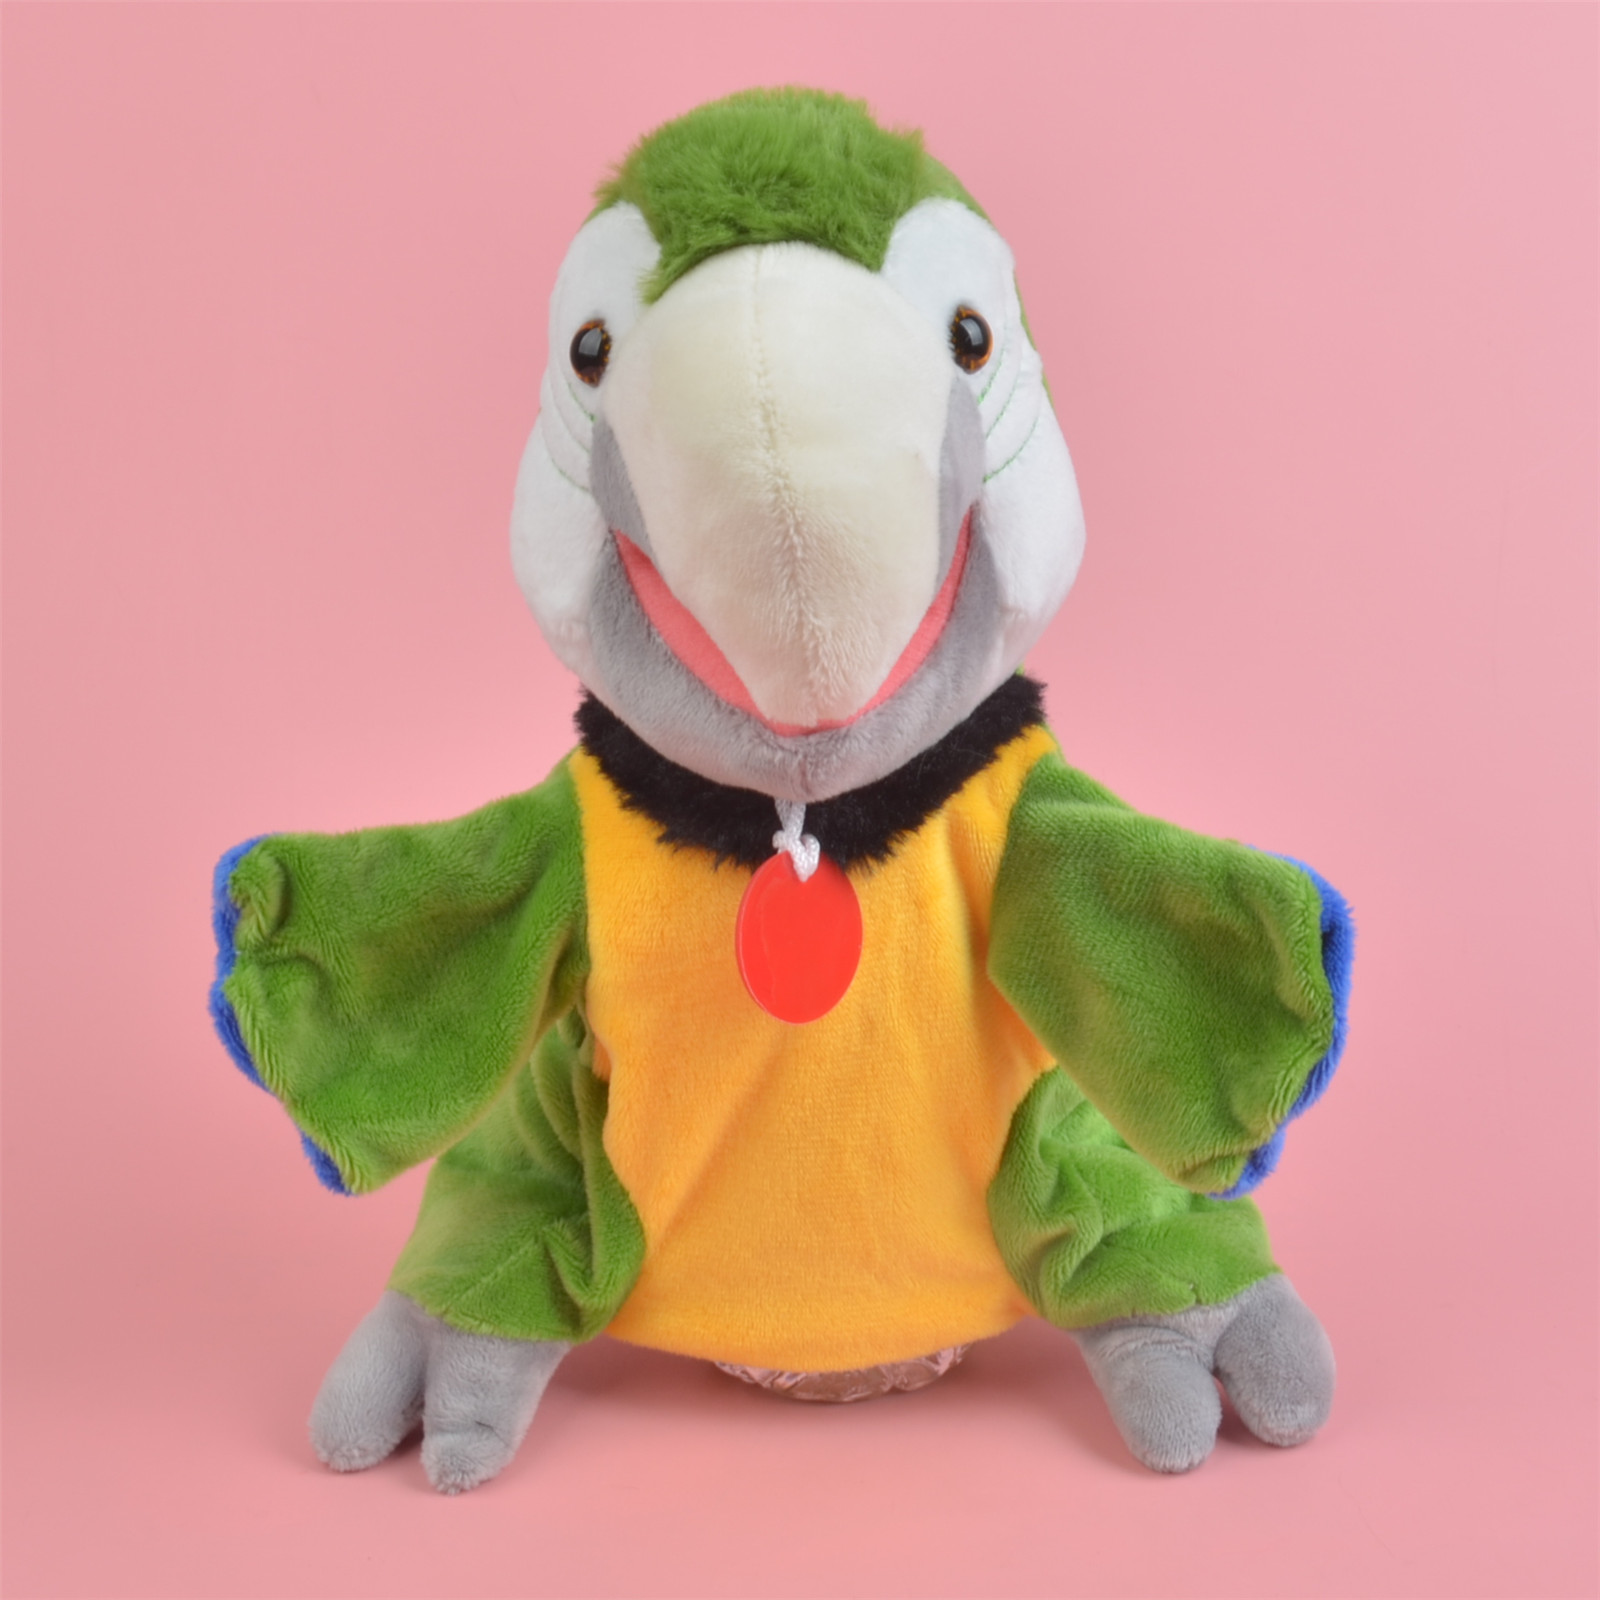 Green Parrot hand puppet Learning plush toy, Stuffed Baby / Kids Develop Doll Toy Gift